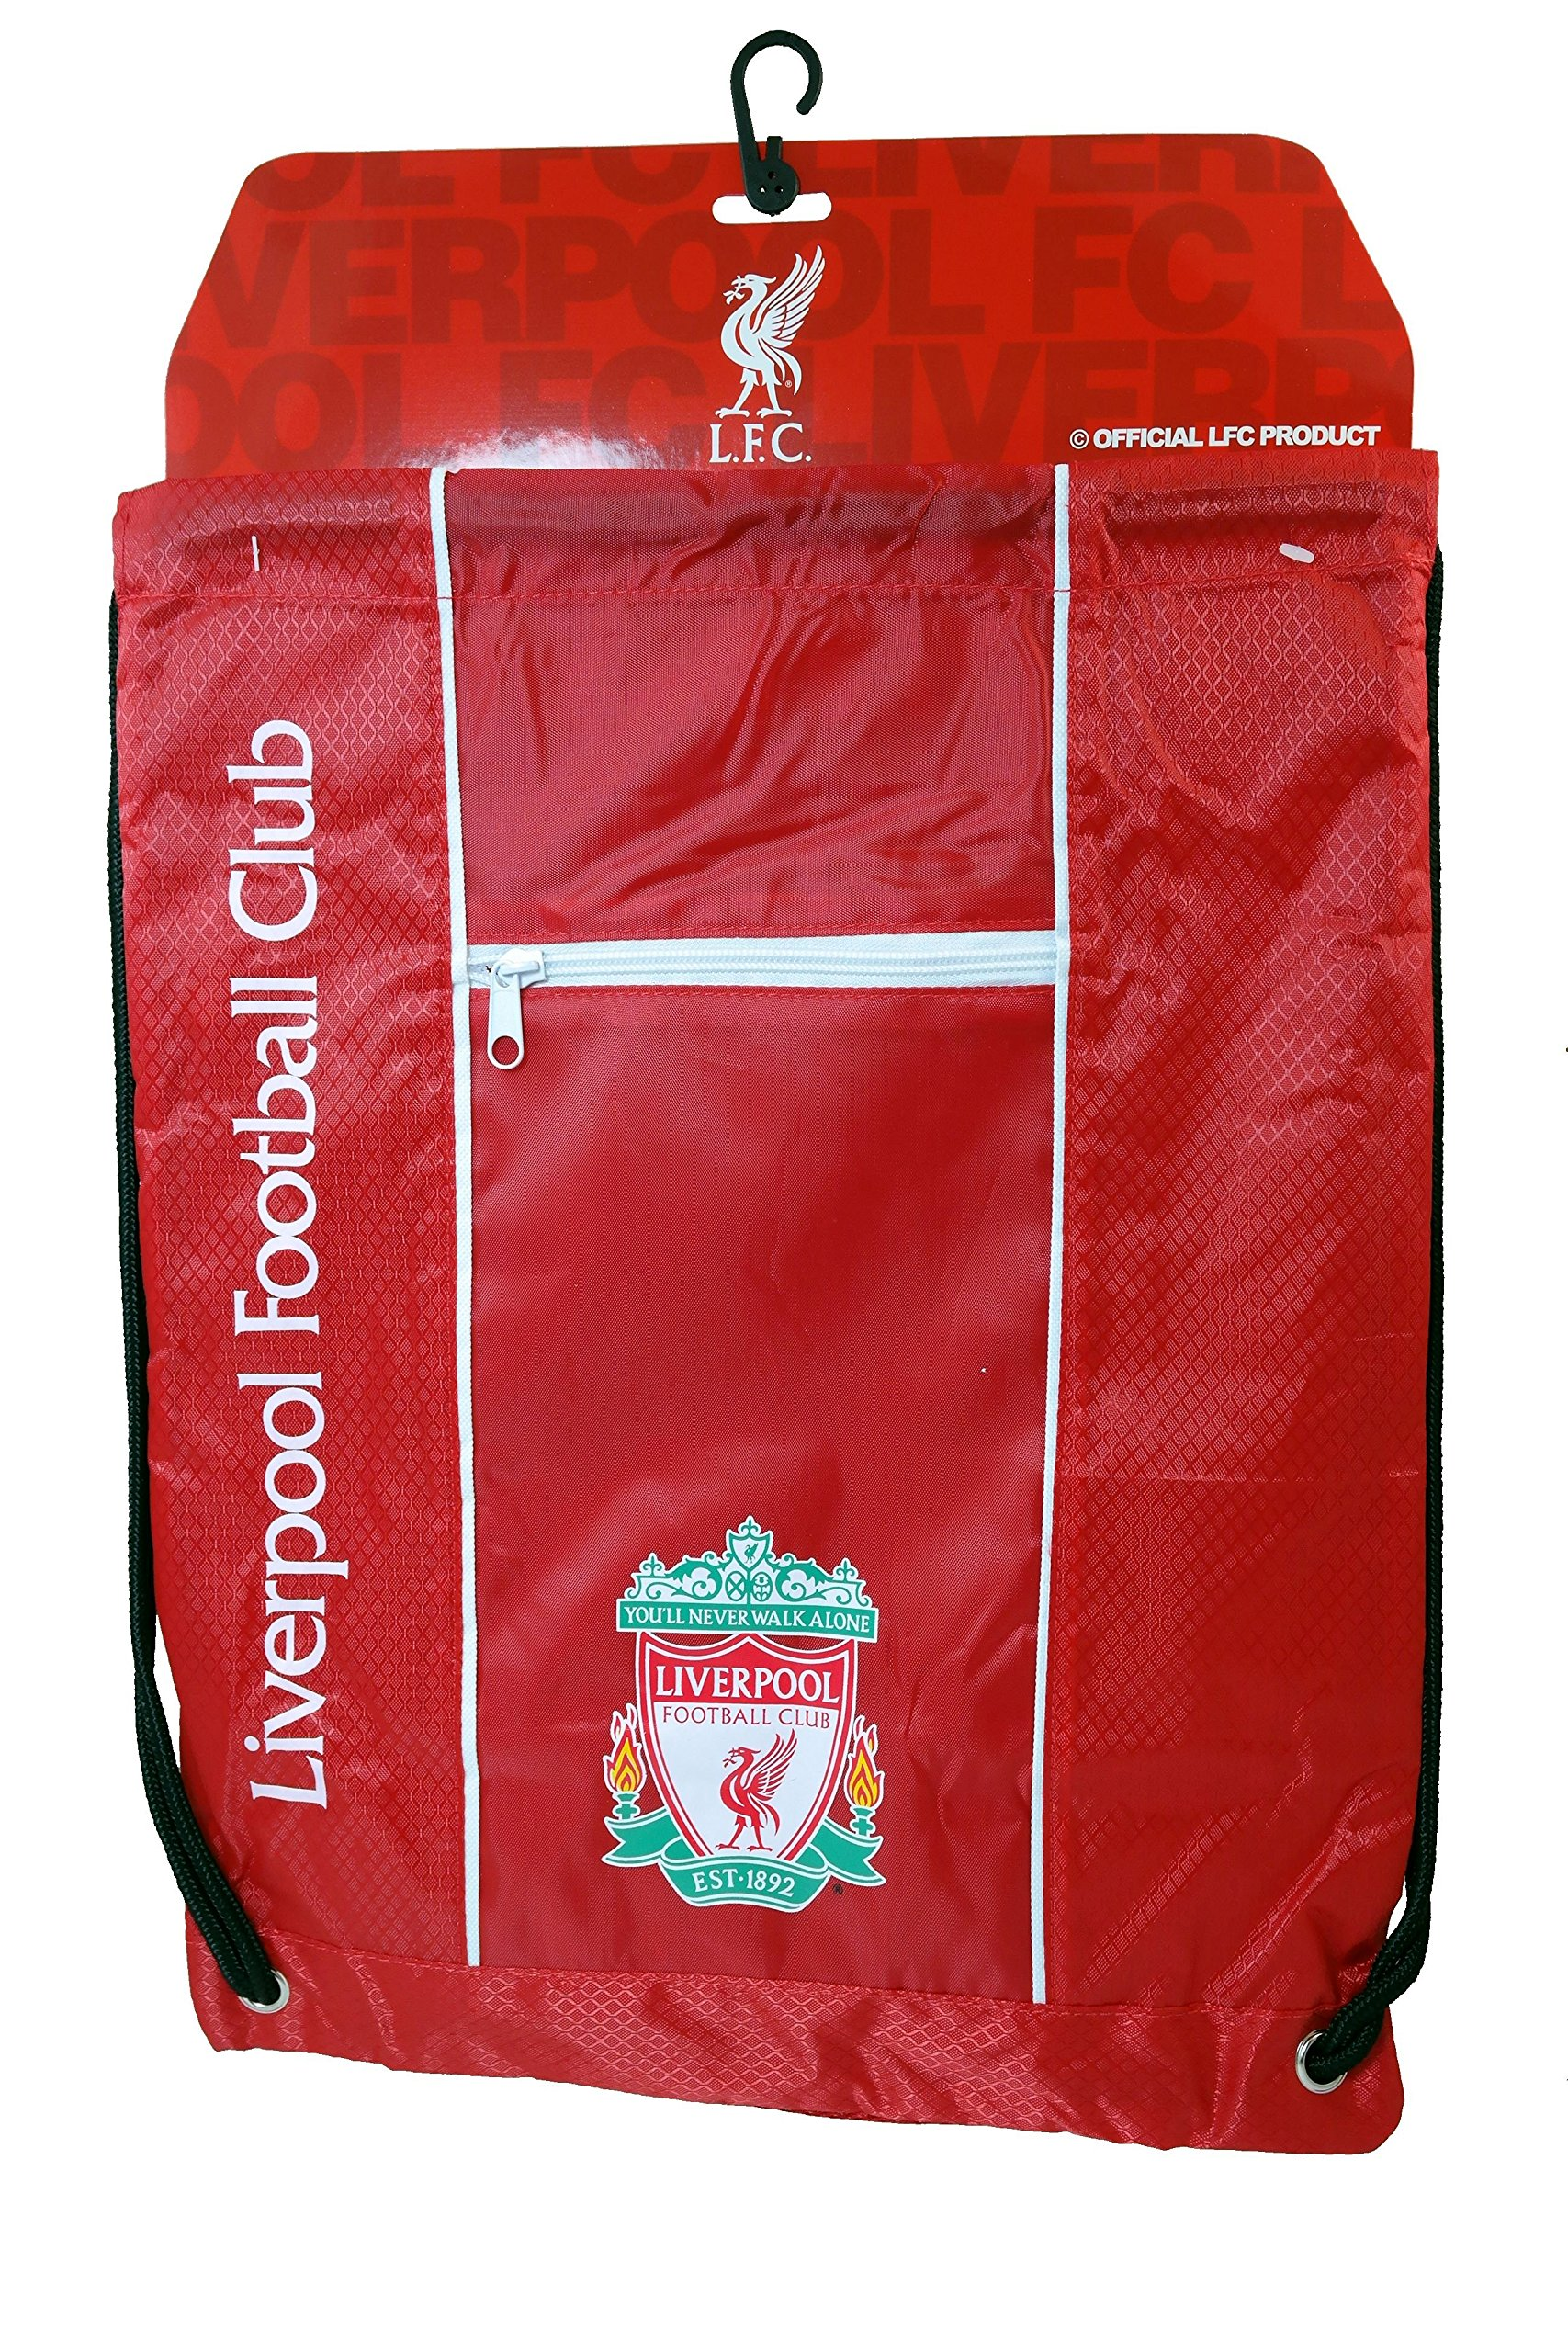 Liverpool FC Authentic Official Licensed Soccer Drawstring Cinch Sack Bag 001